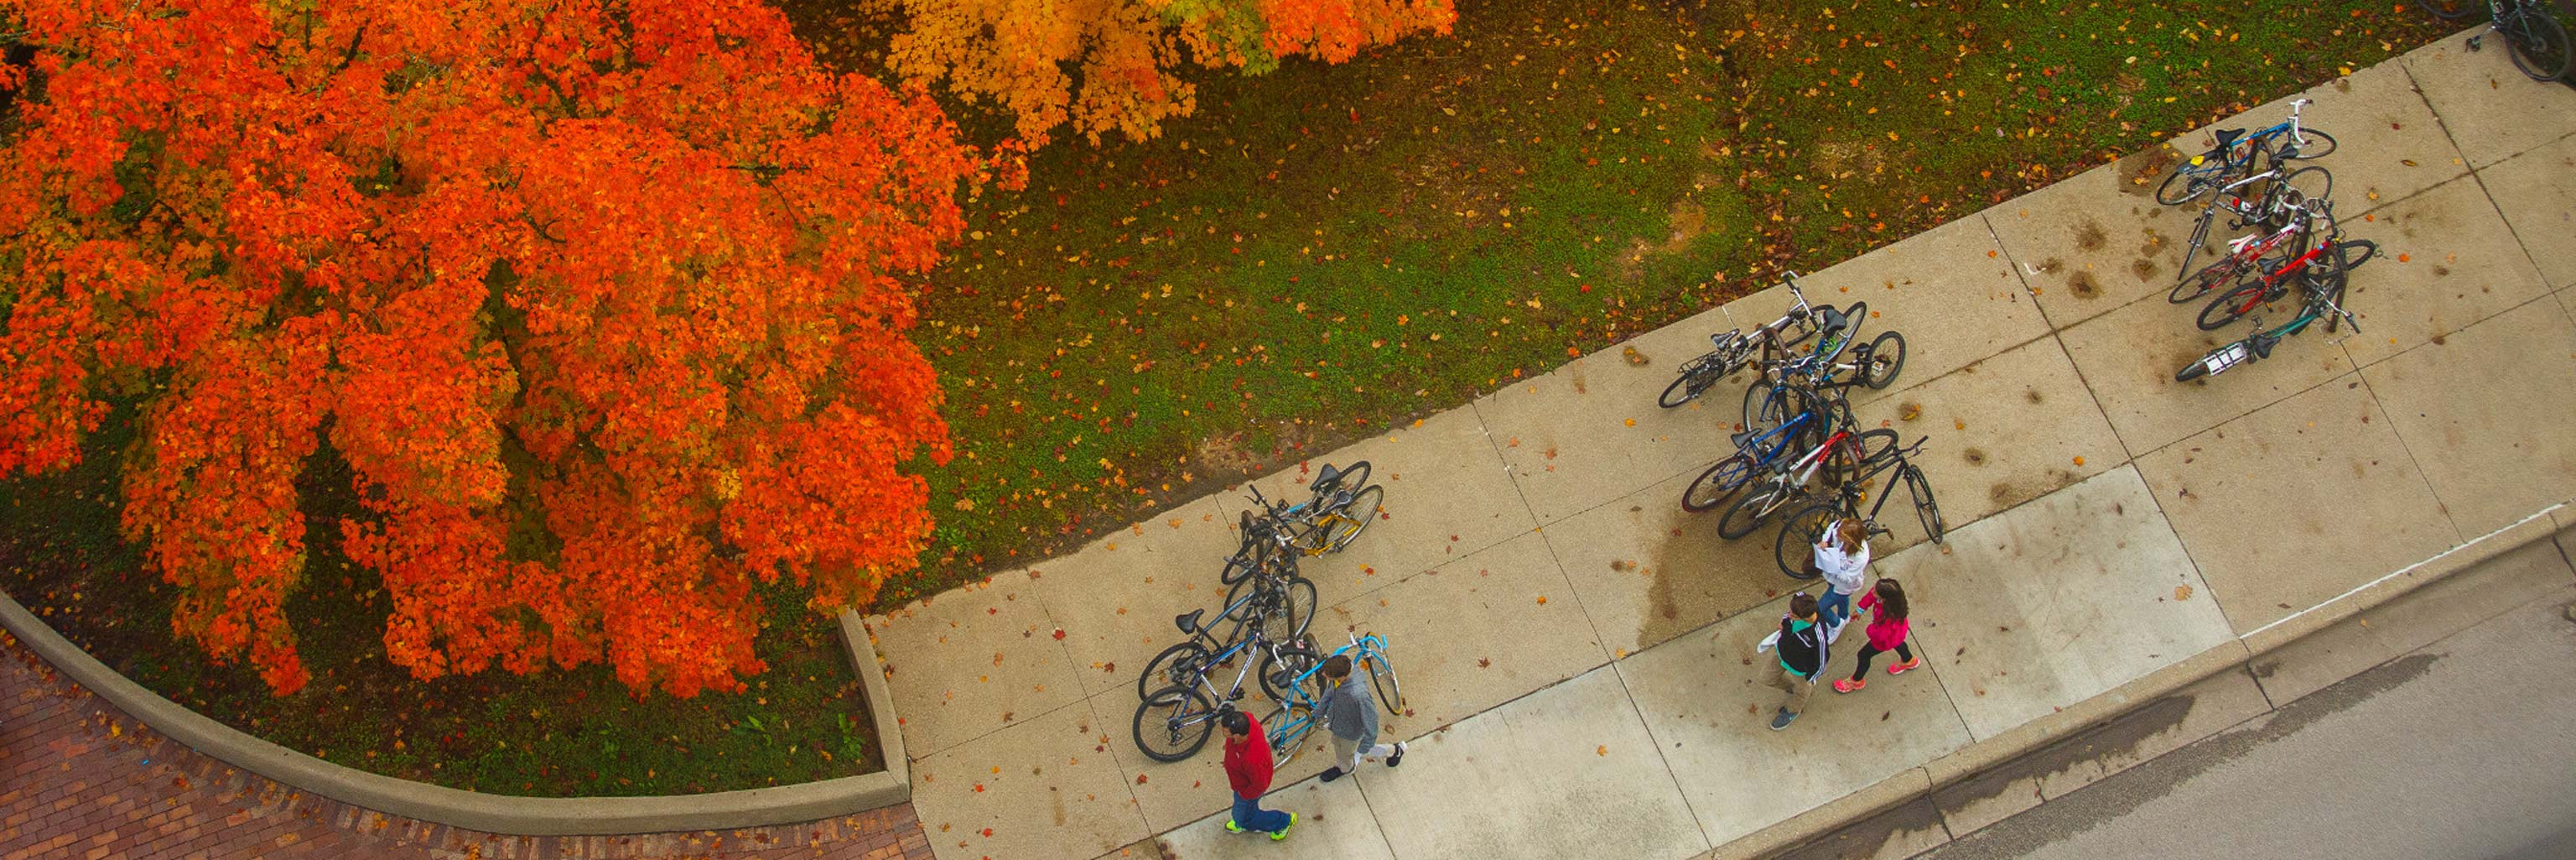 Autumn aerial view of campus